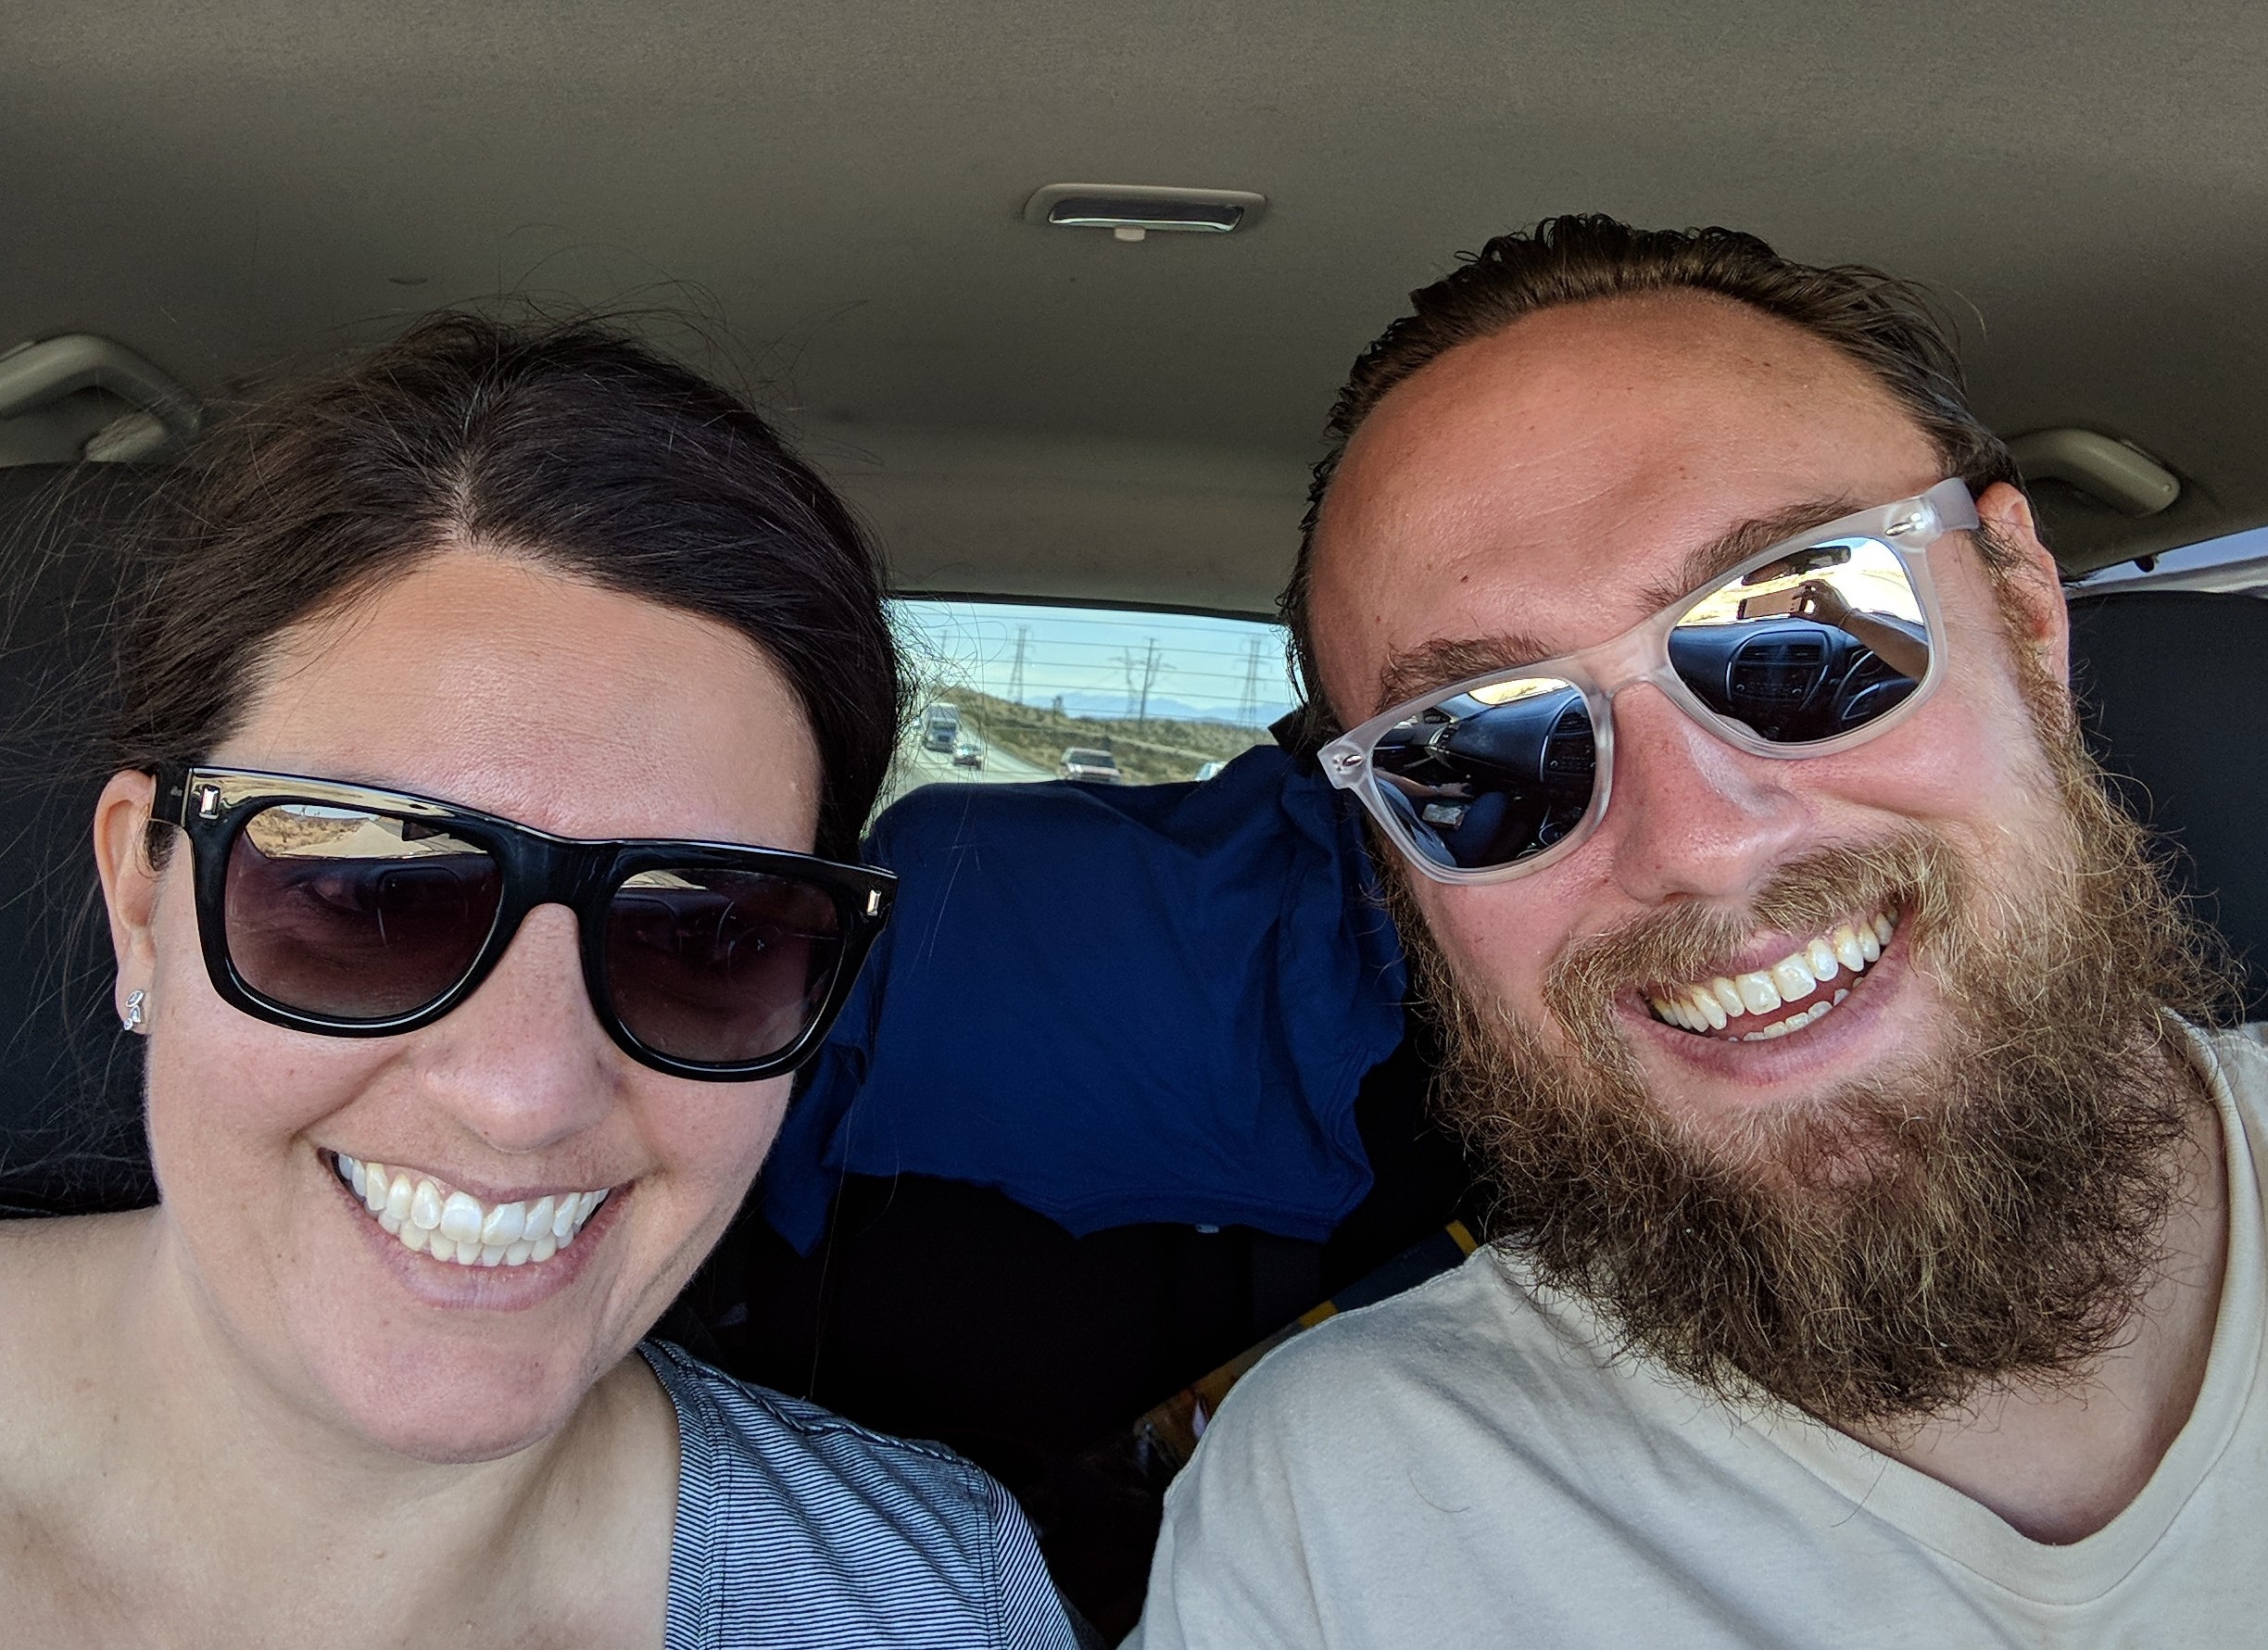 Road trippin' in our new (used) car!